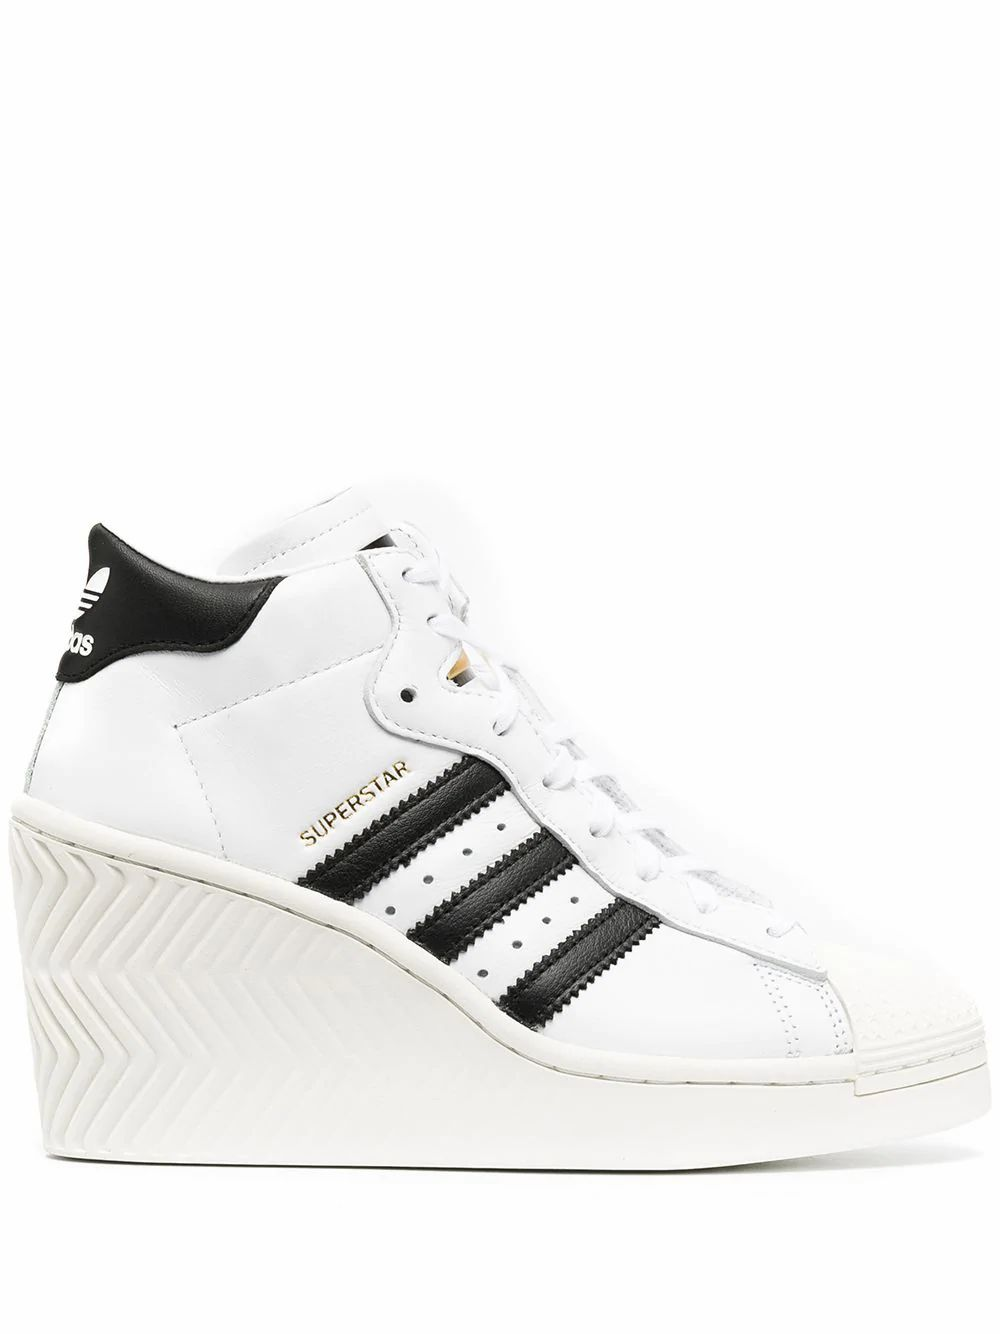 Adidas Originals ADIDAS WOMEN'S WHITE SNEAKERS